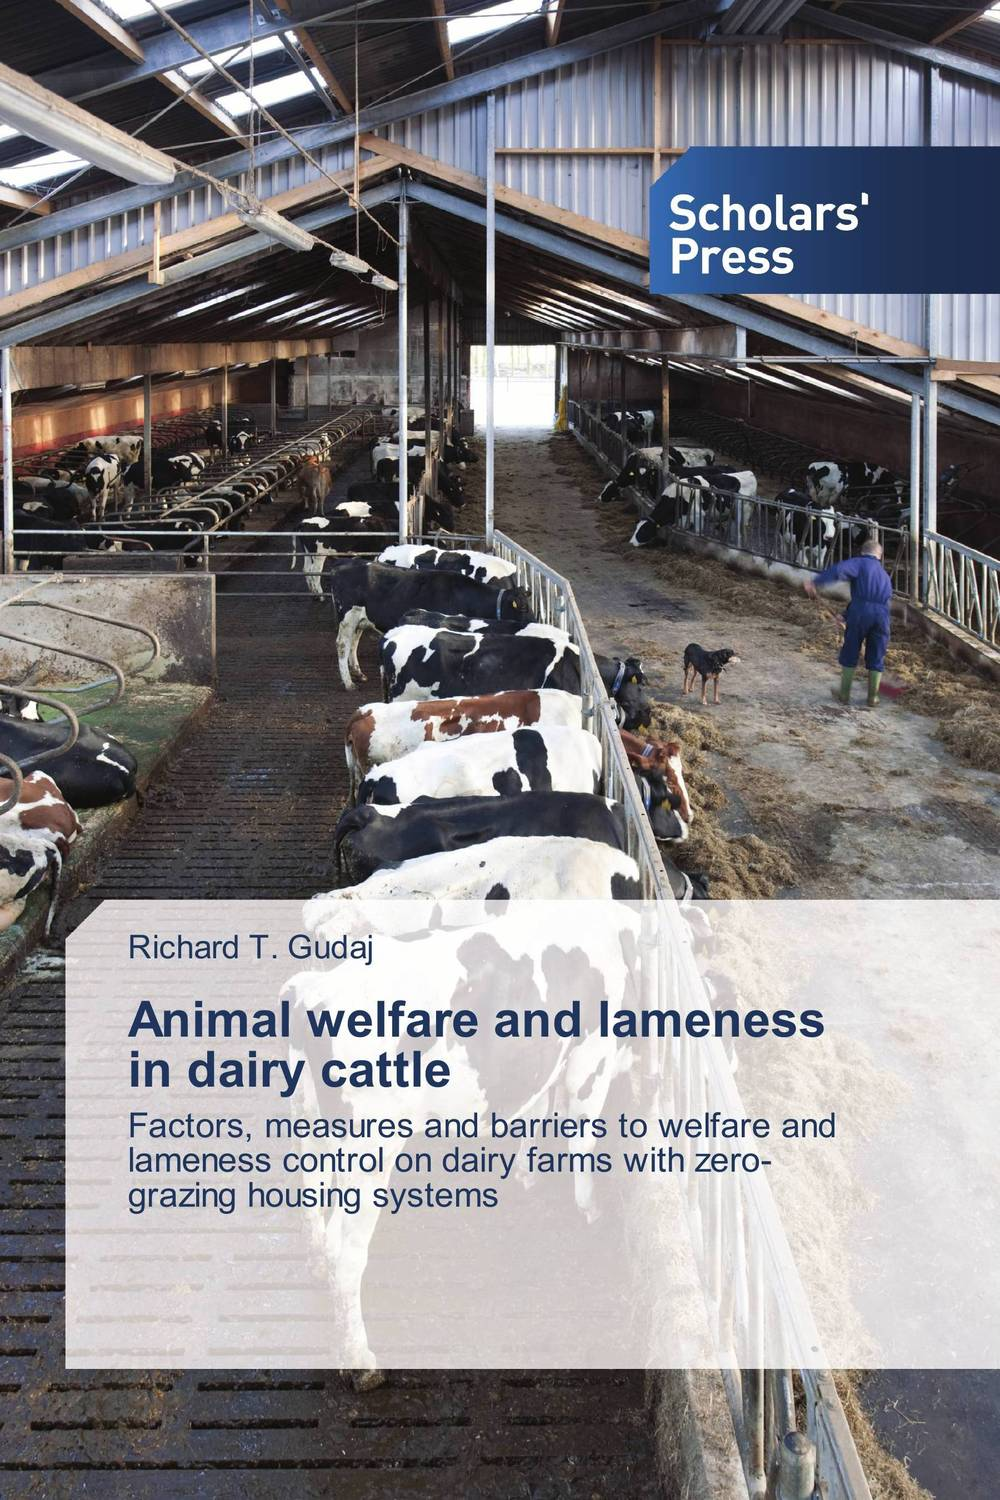 Animal welfare and lameness in dairy cattle rakesh kumar tiwari and rajendra prasad ojha conformation and stability of mixed dna triplex